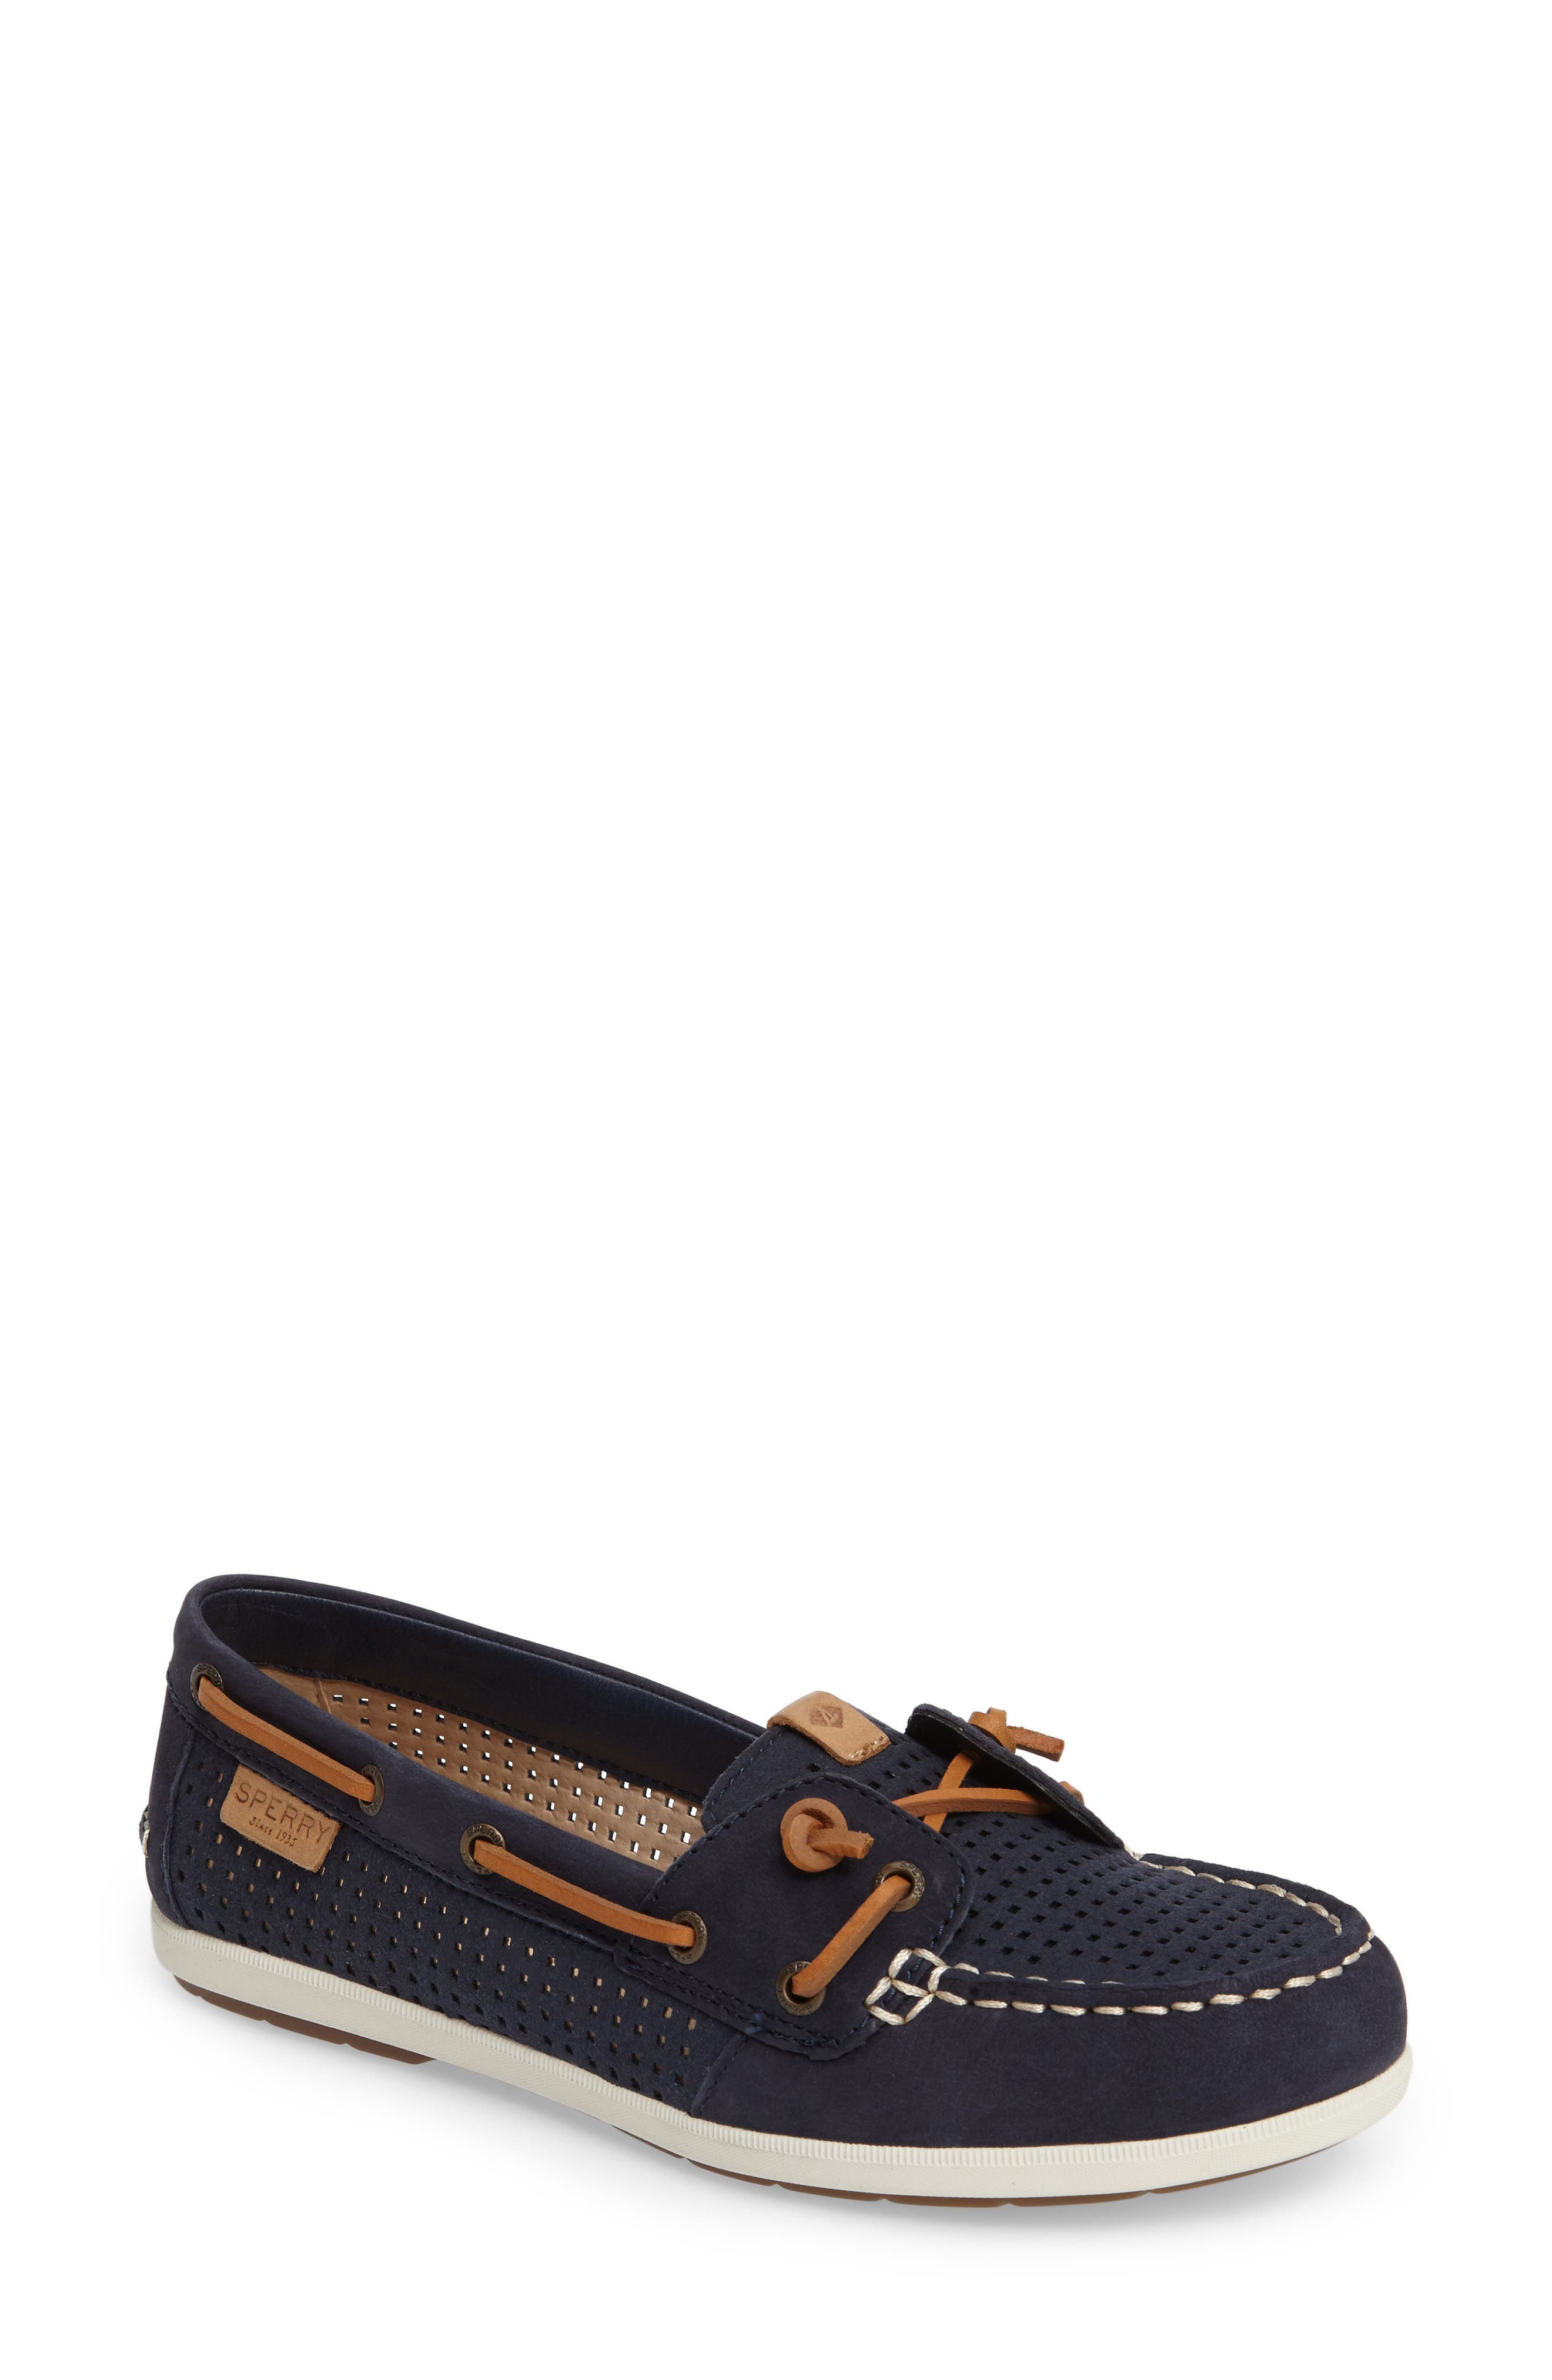 Coil Ivy Boat Shoe,                         Main,                         color, Navy Leather